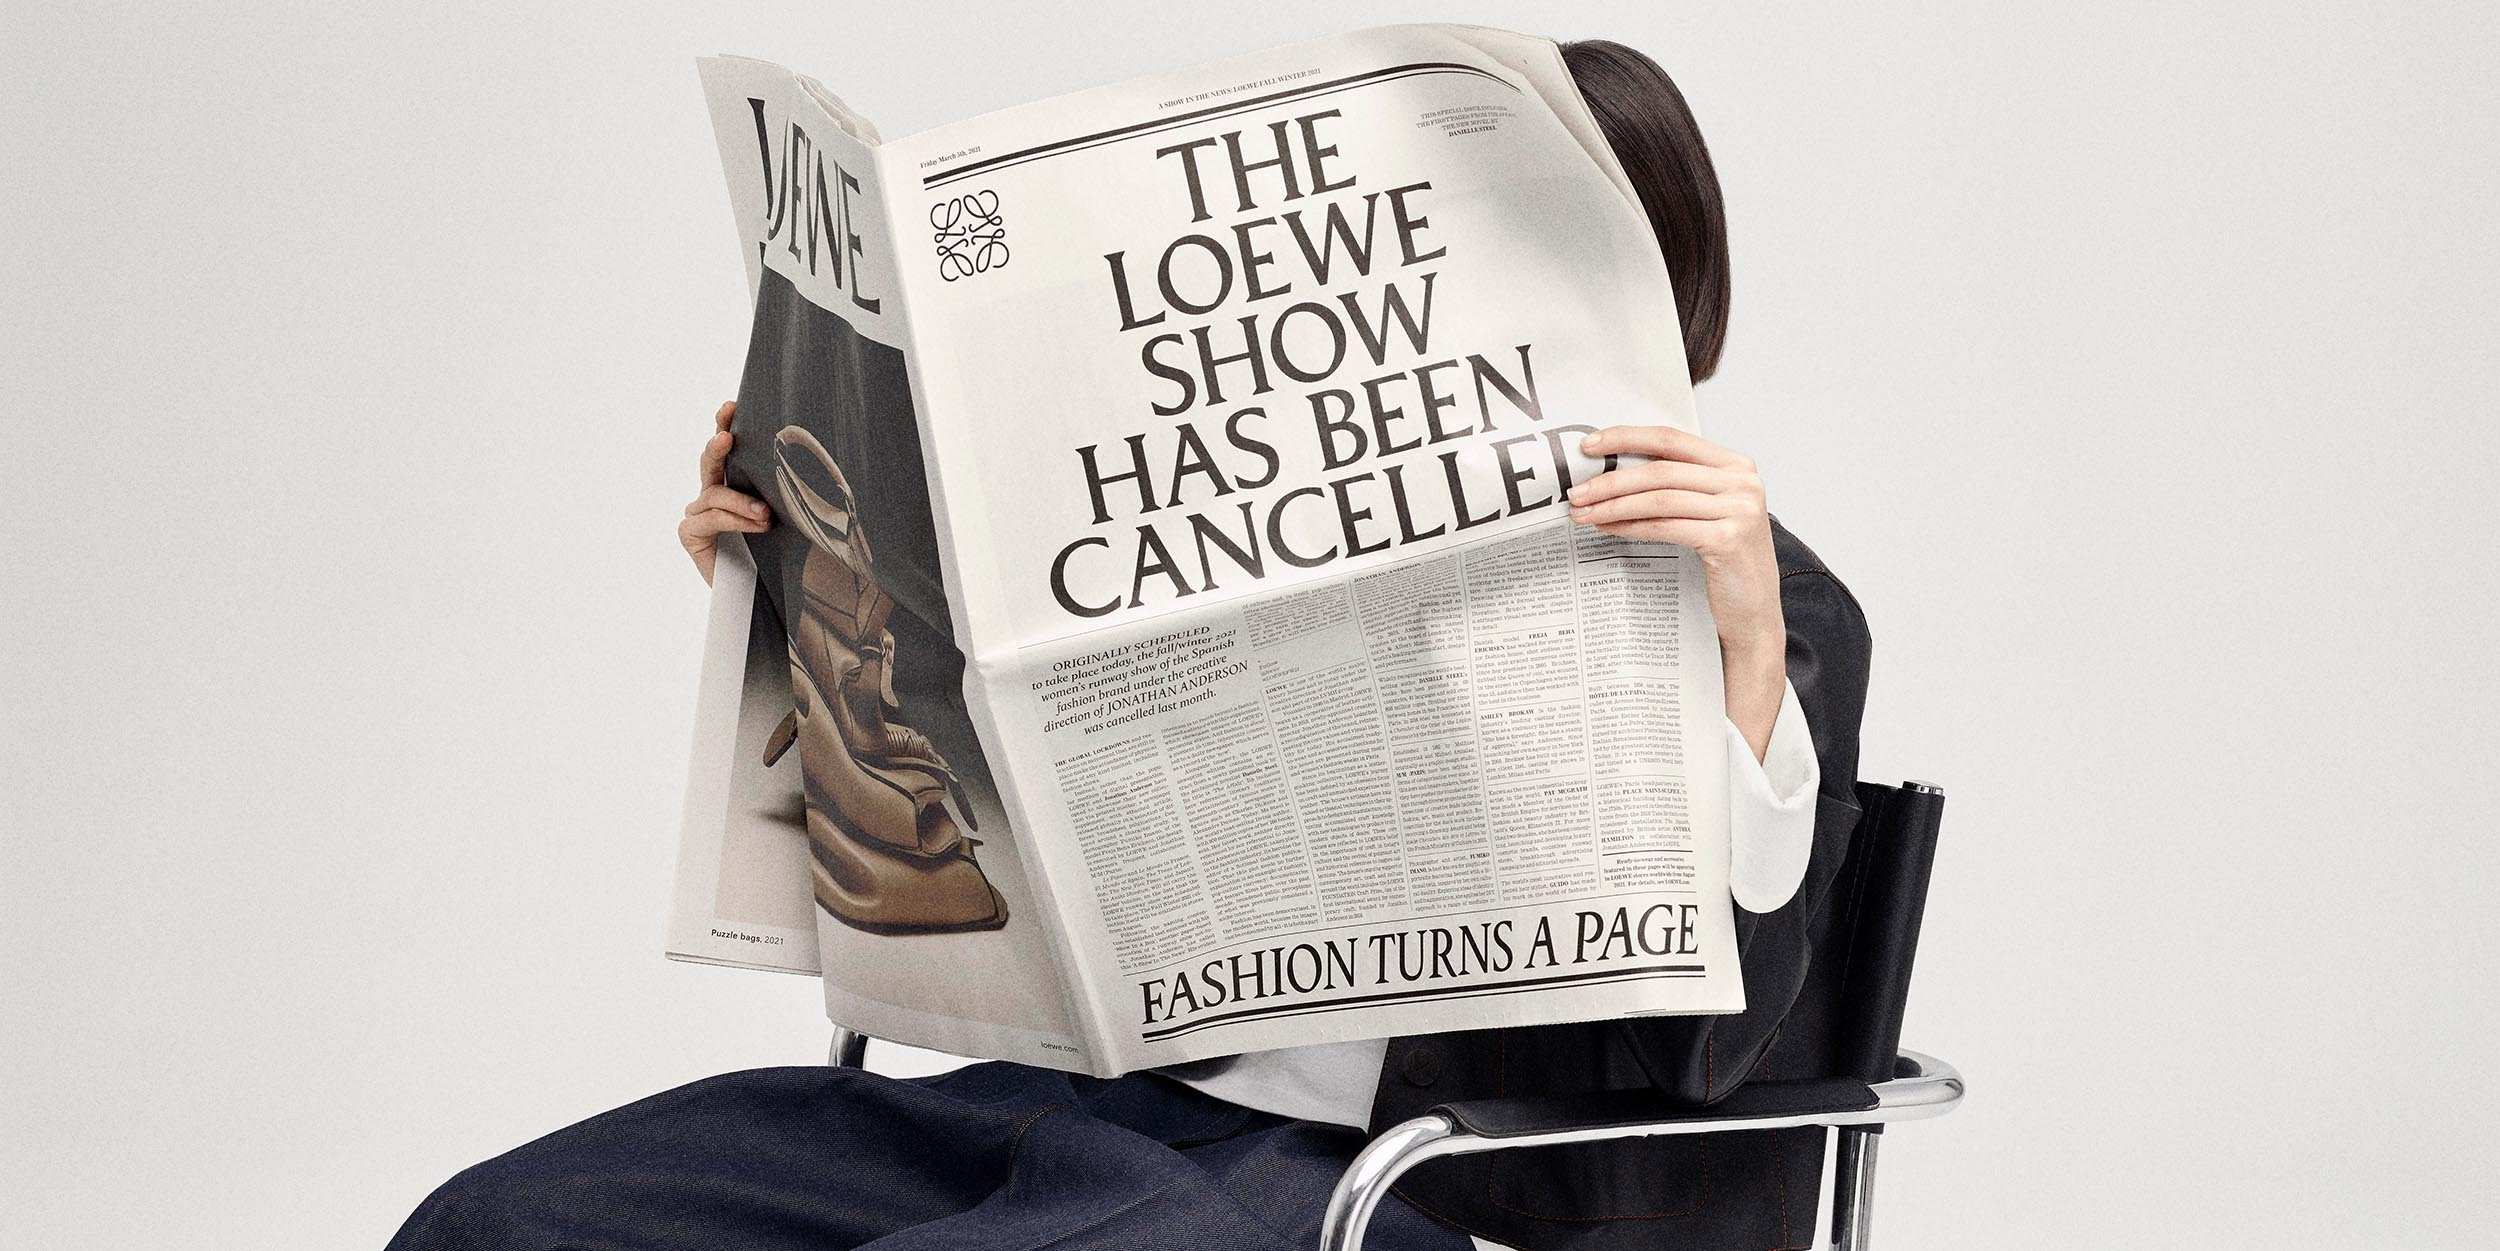 Loewe's Fall/Winter 2021 collection is hot off the press